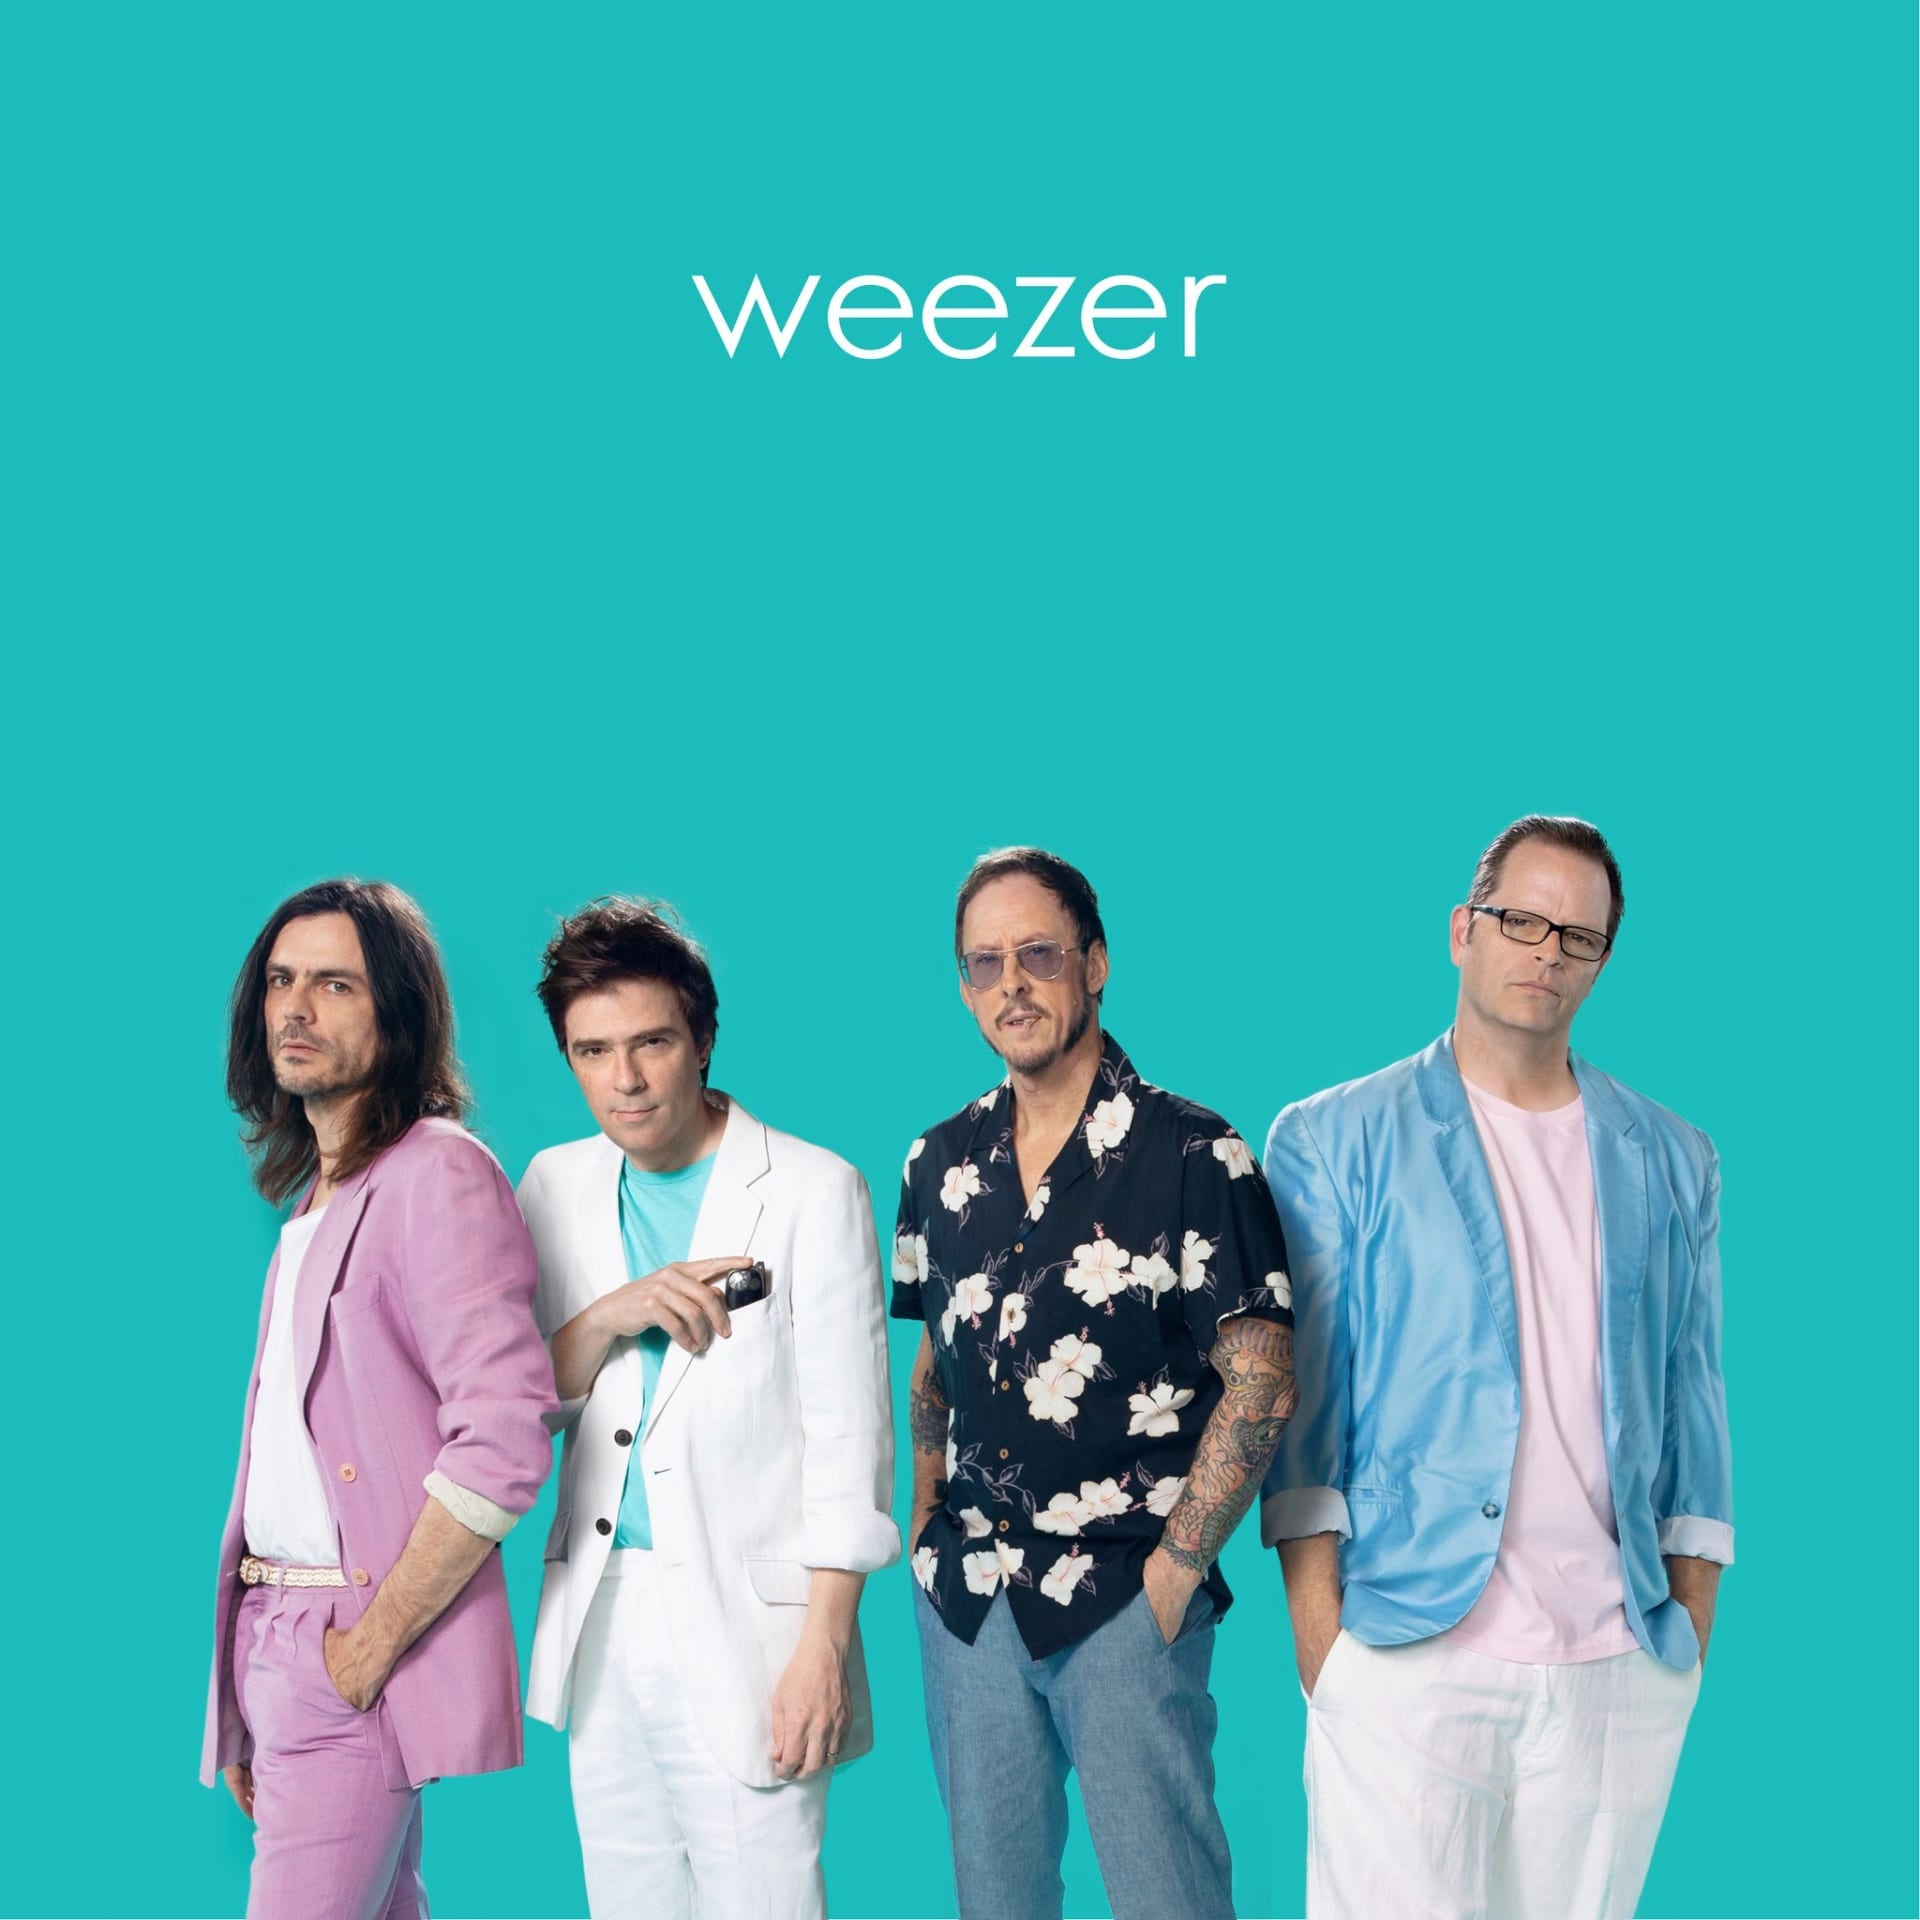 The band Weezer stands in front of a teal background dressed in 80's attire